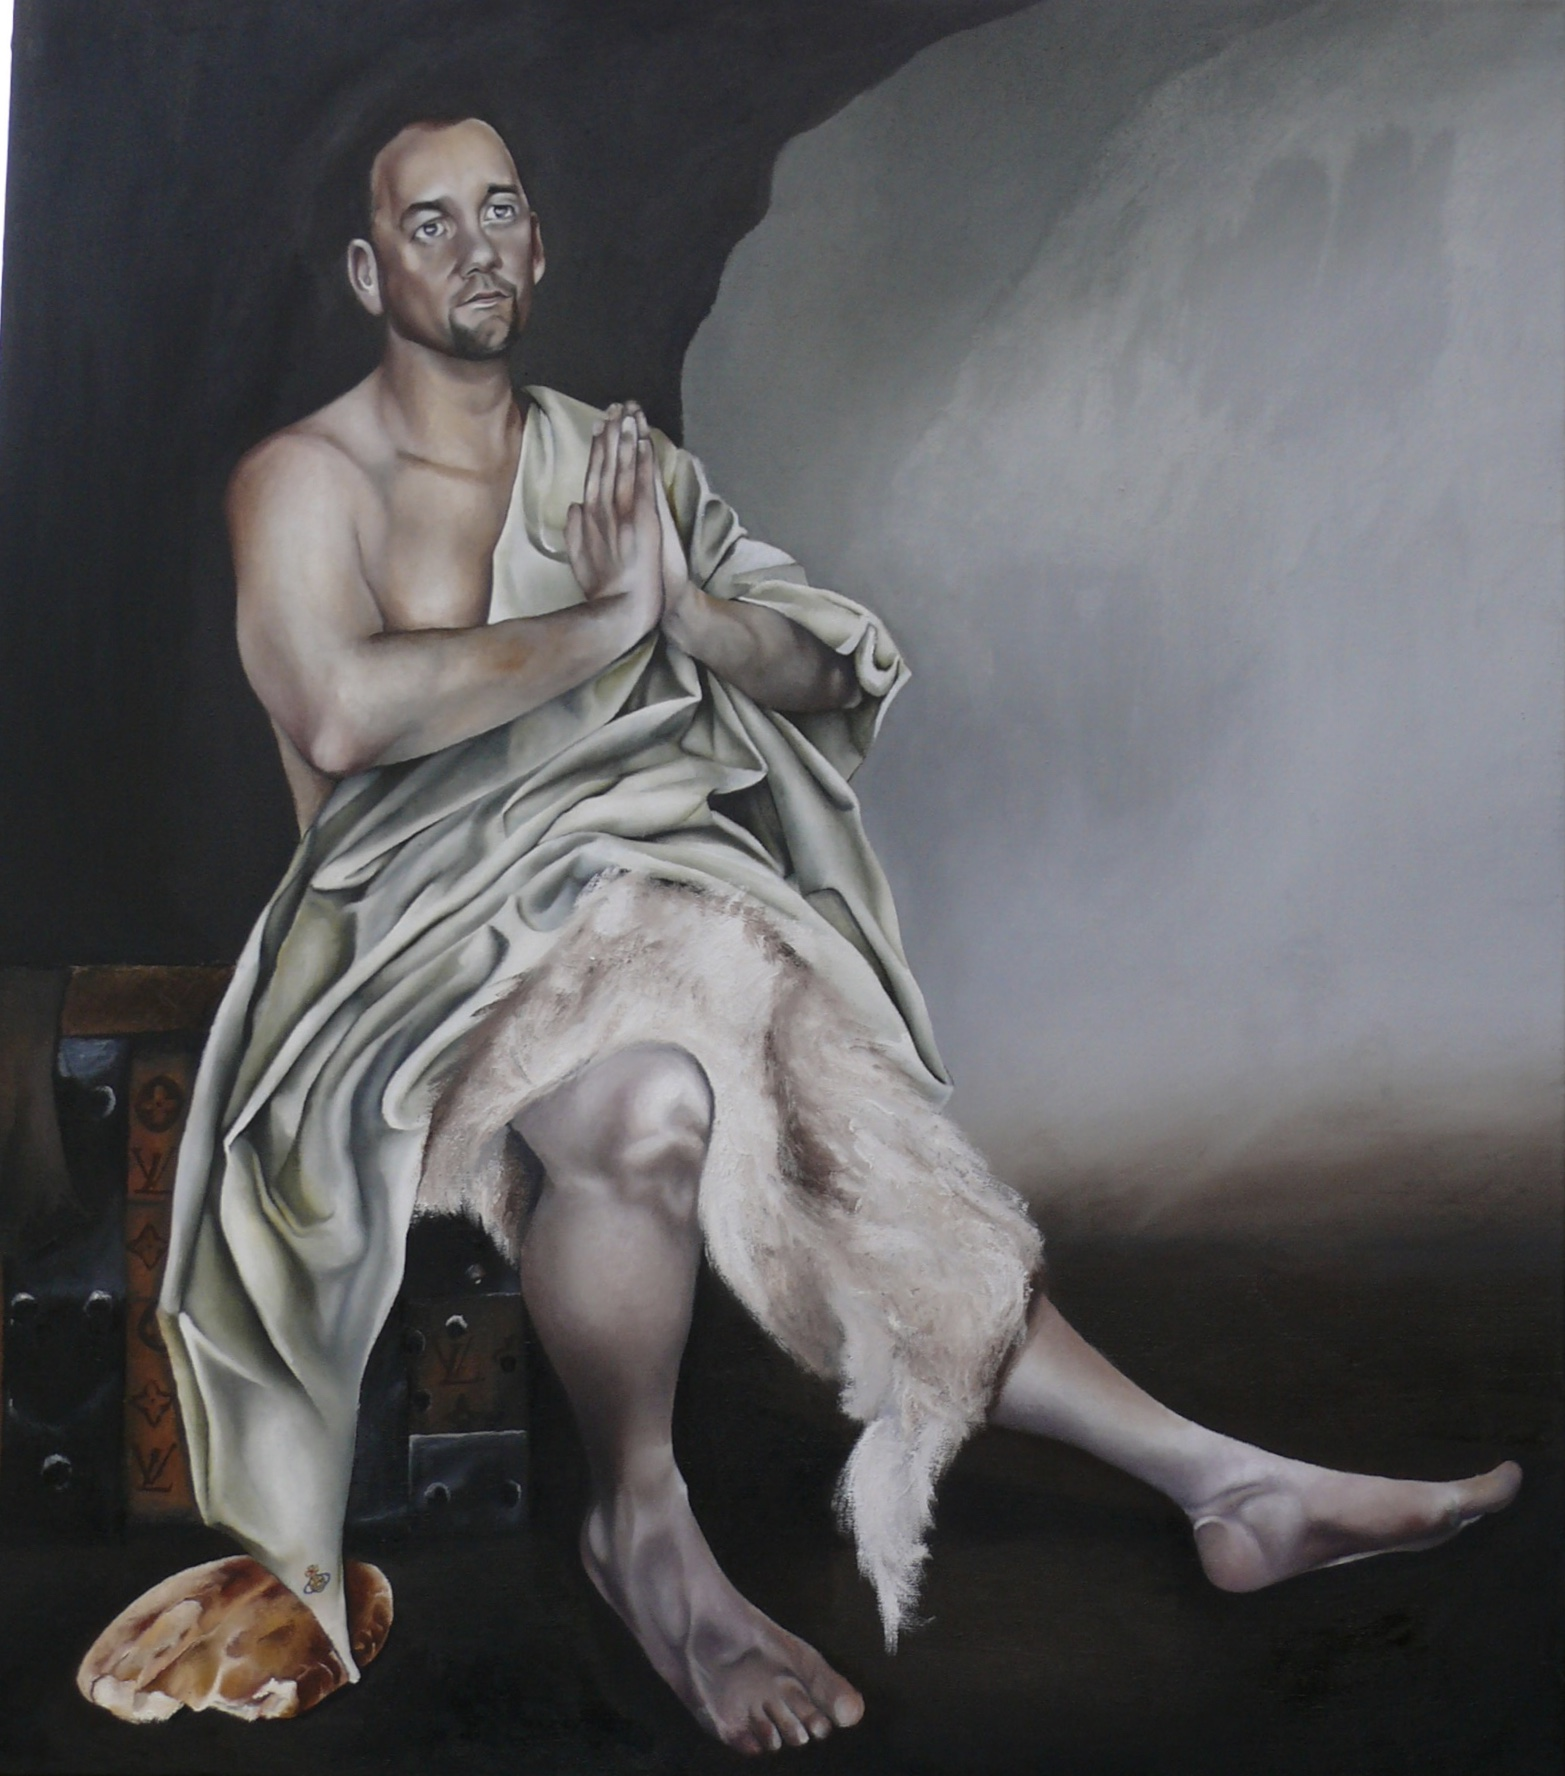 The 2009, 'Saints and Sinners' painting Brendan as 'Saint Paul the Hermit'. Paul holds patronage to the fashion industry. Brendan is a stylist and fashion designer. the bread and sheepskin is to represent 'Saint Paul' and the LV suitcase Brendan sits on is to represent #BrendanCourtney